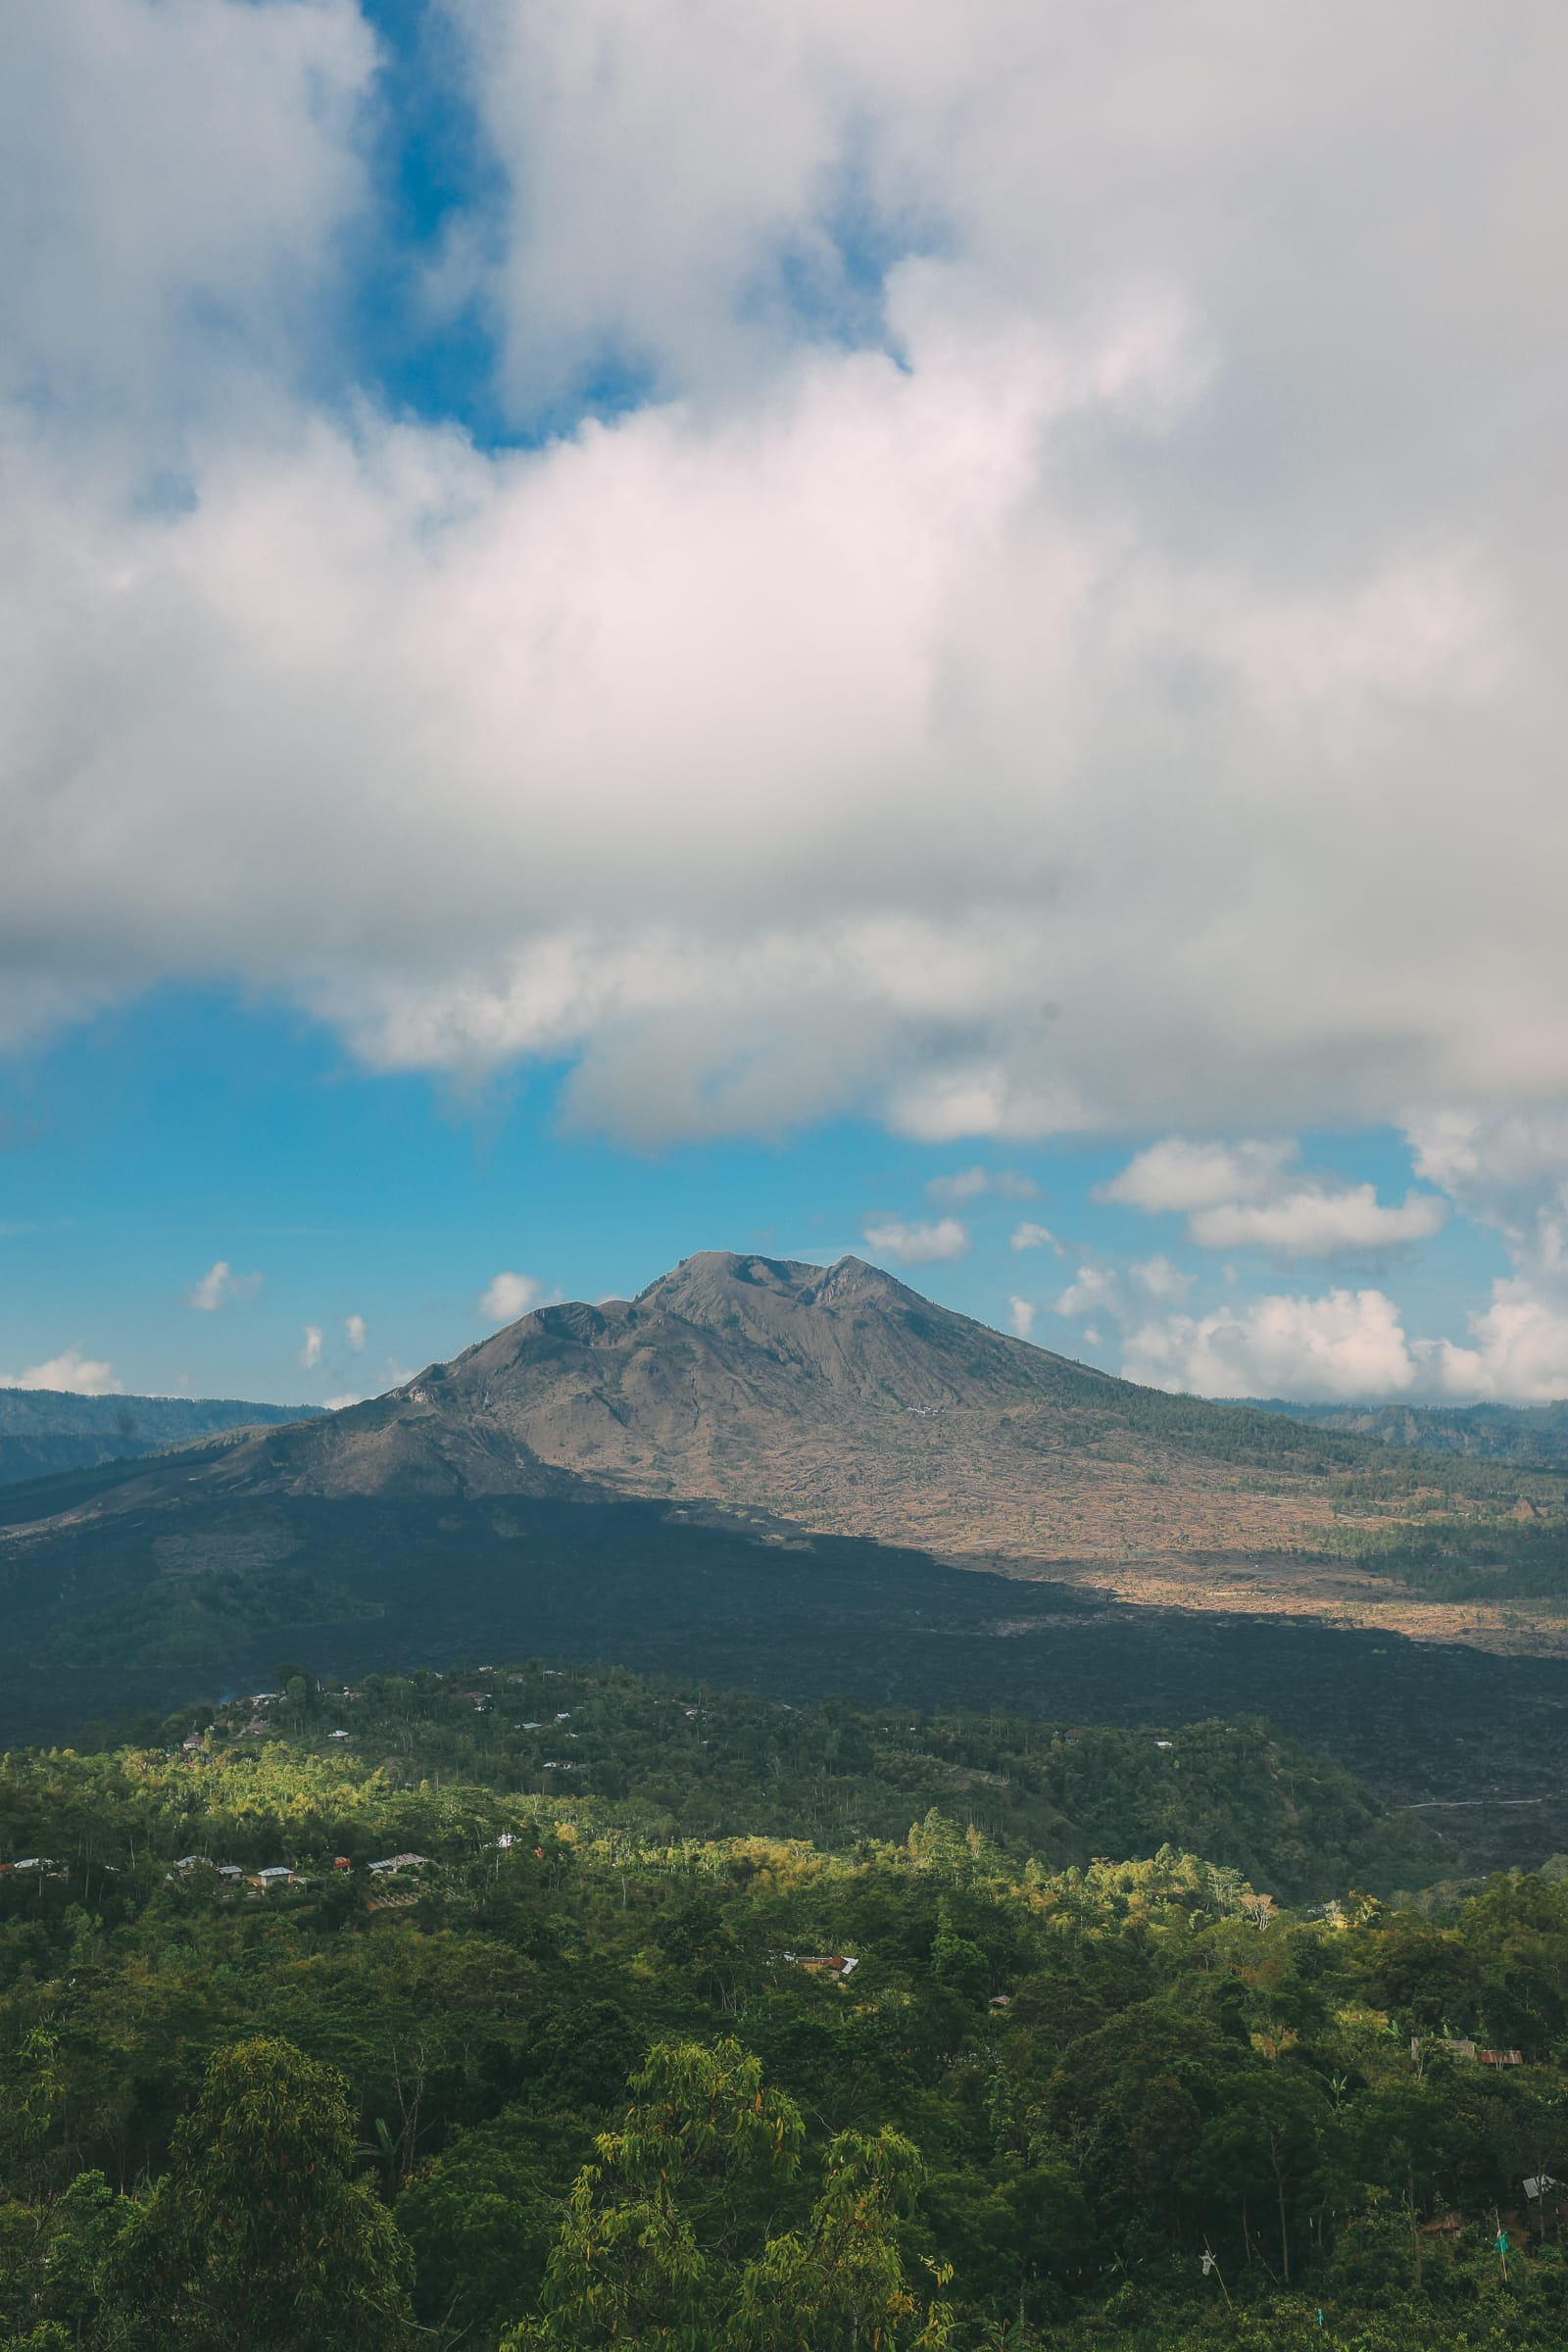 Finding A Secret Waterfall in Bali, Tirta Empul Temple And Mount Batur Volcano (27)